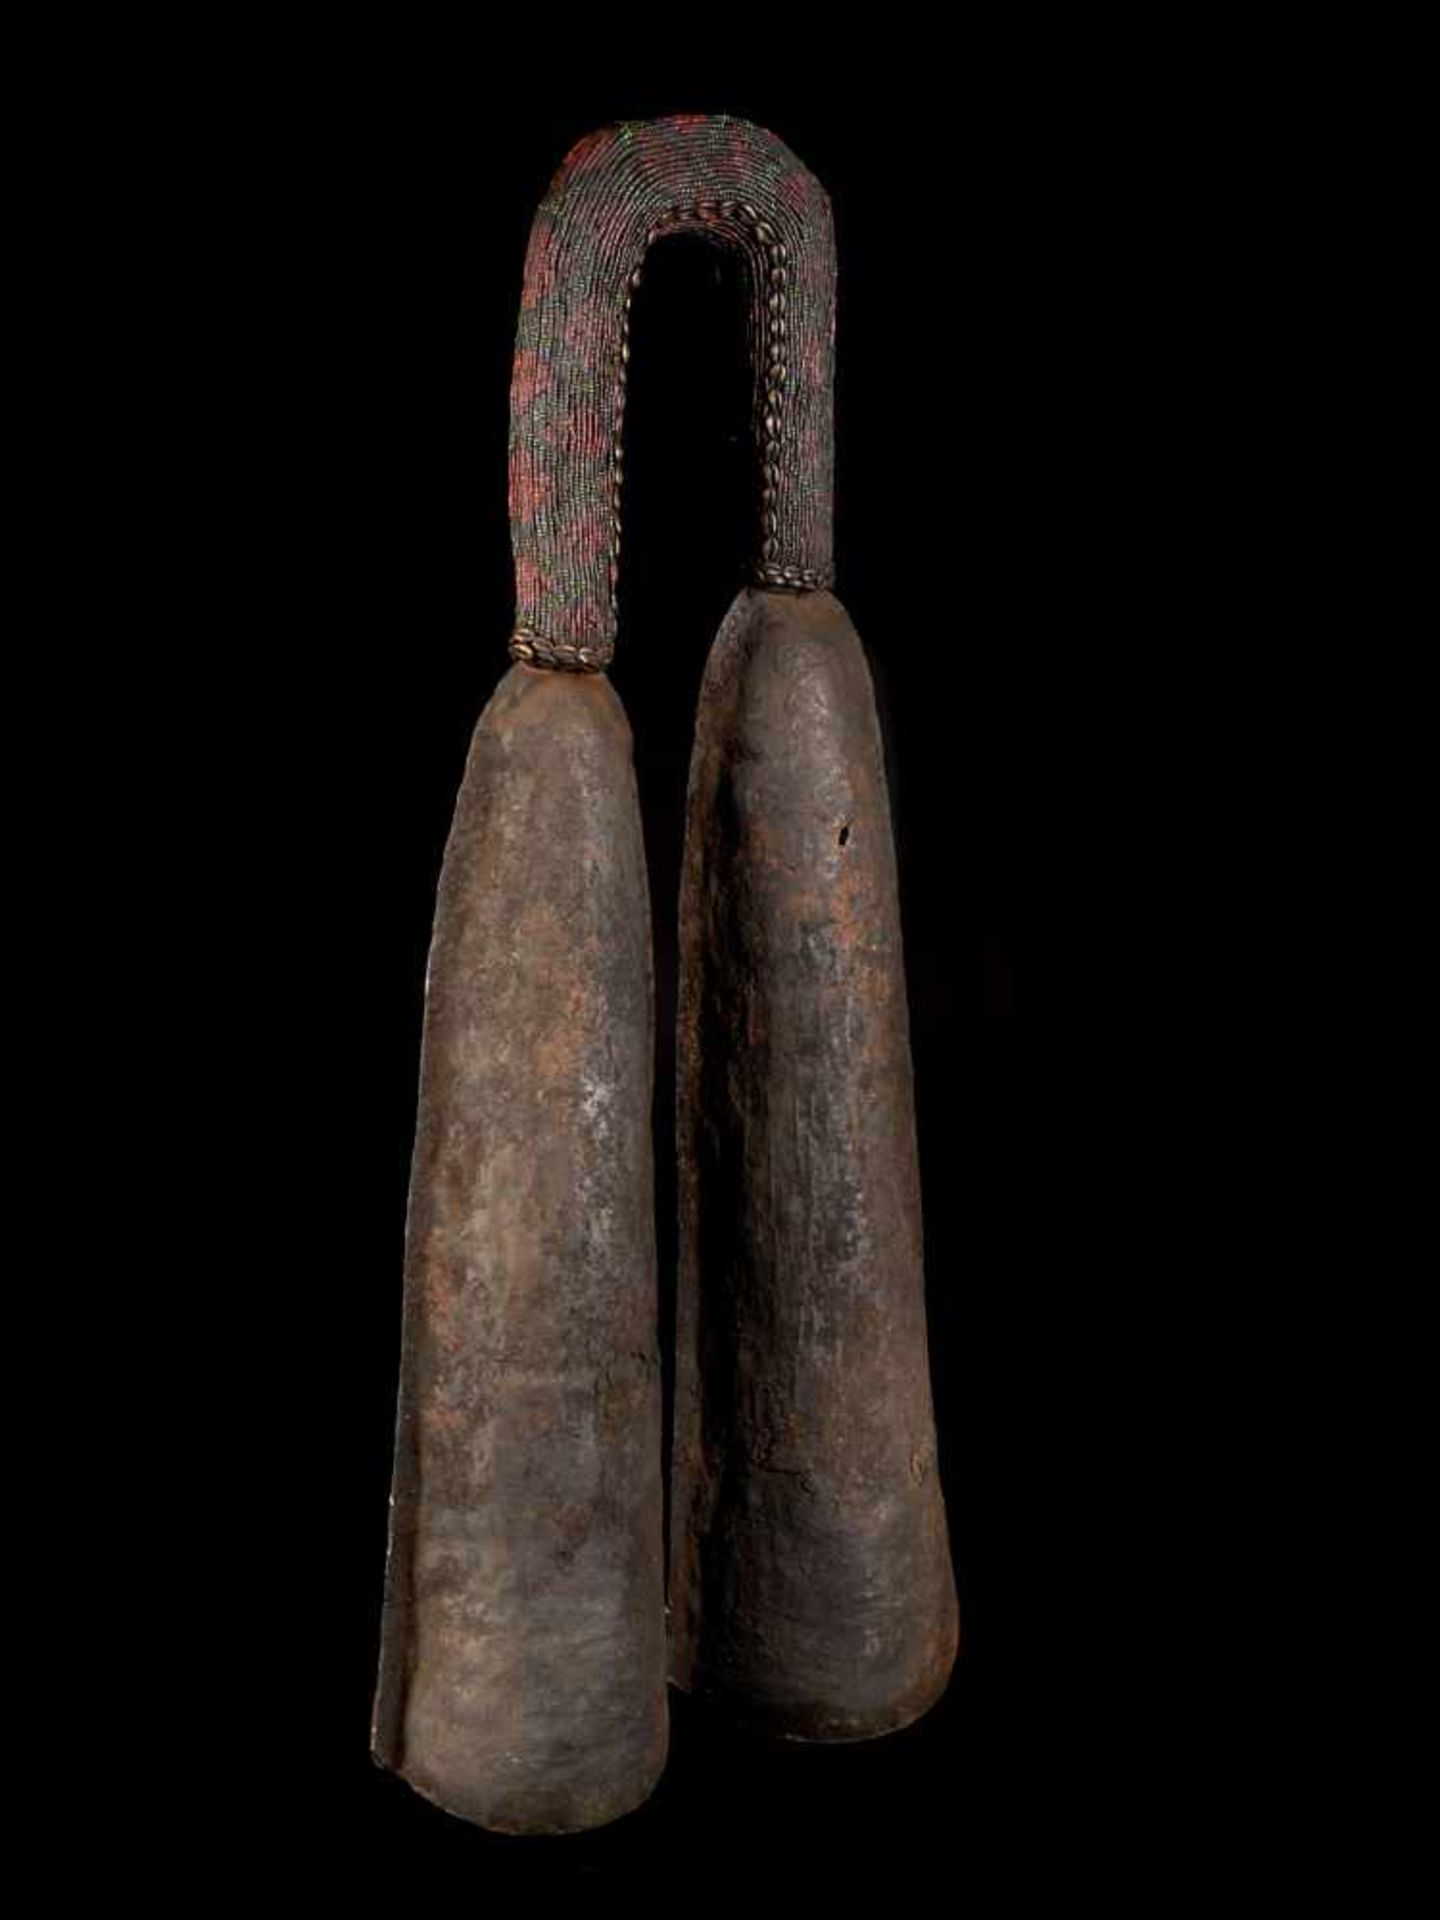 Ceremonial Double Gong With Beaded Handle - Tribal ArtThis ceremonial double gong consists of two - Bild 4 aus 6